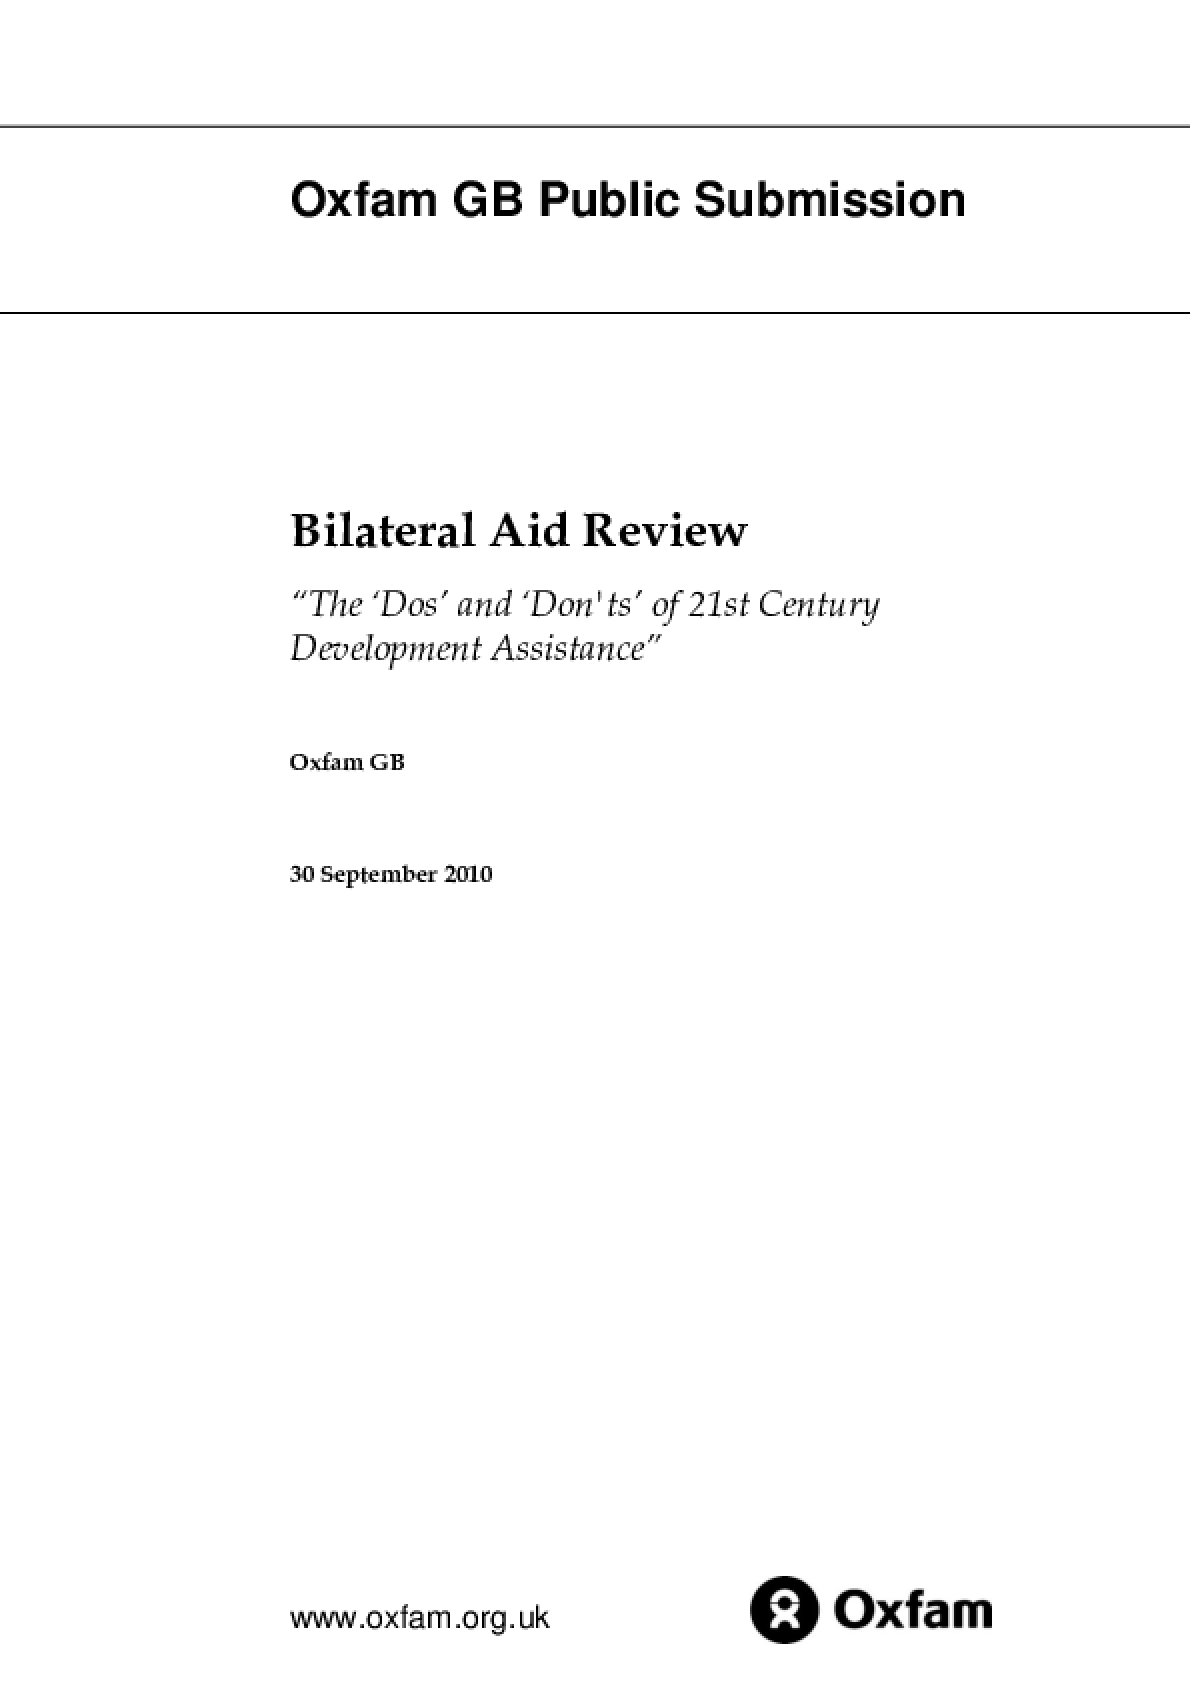 Bilateral Aid Review: The 'Do's' and 'Don'ts' of 21st Century Development Assistance